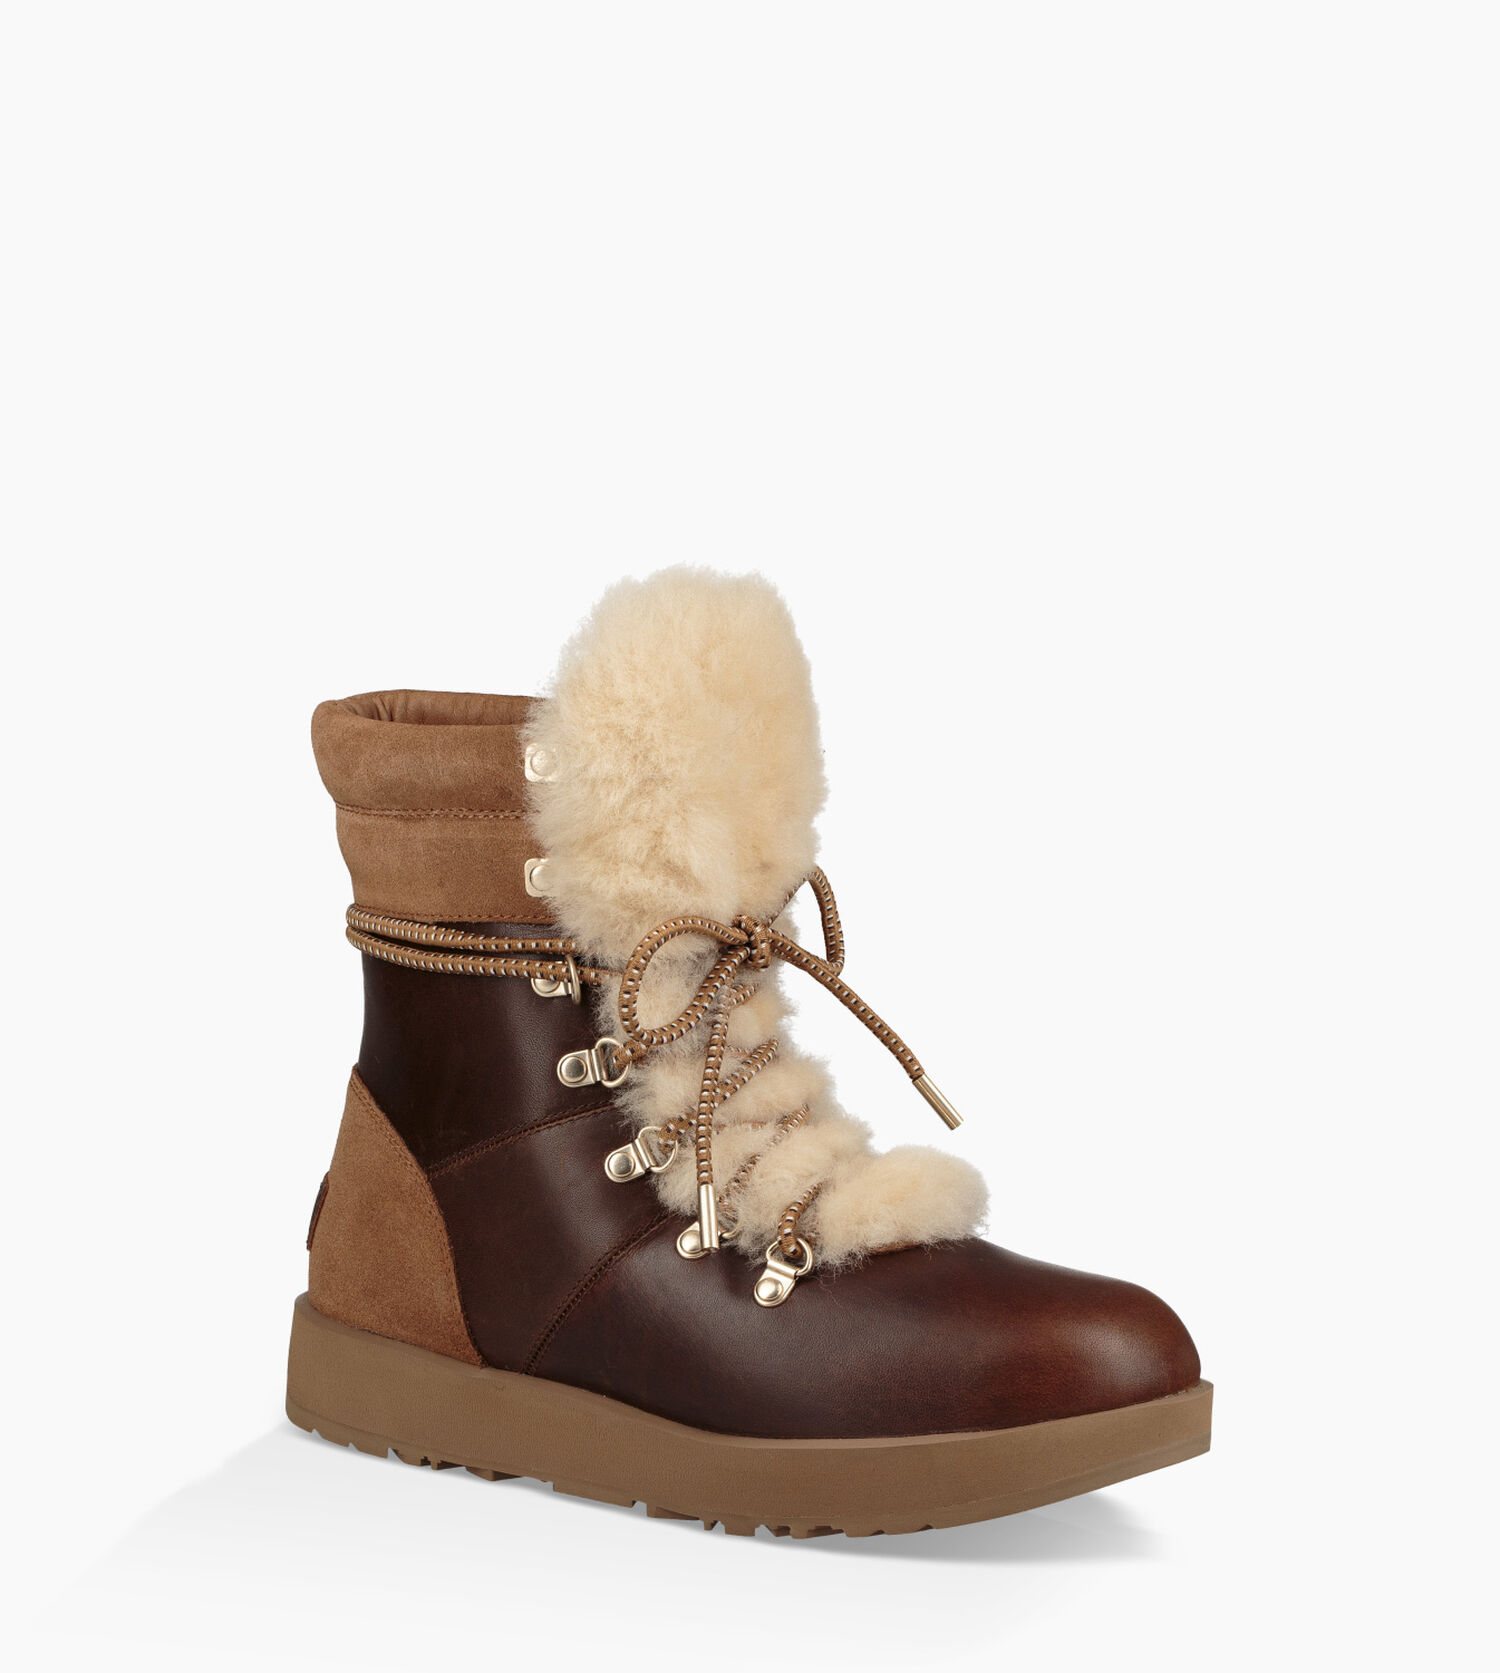 96c6a274d81 Women's Share this product Viki Waterproof Boot